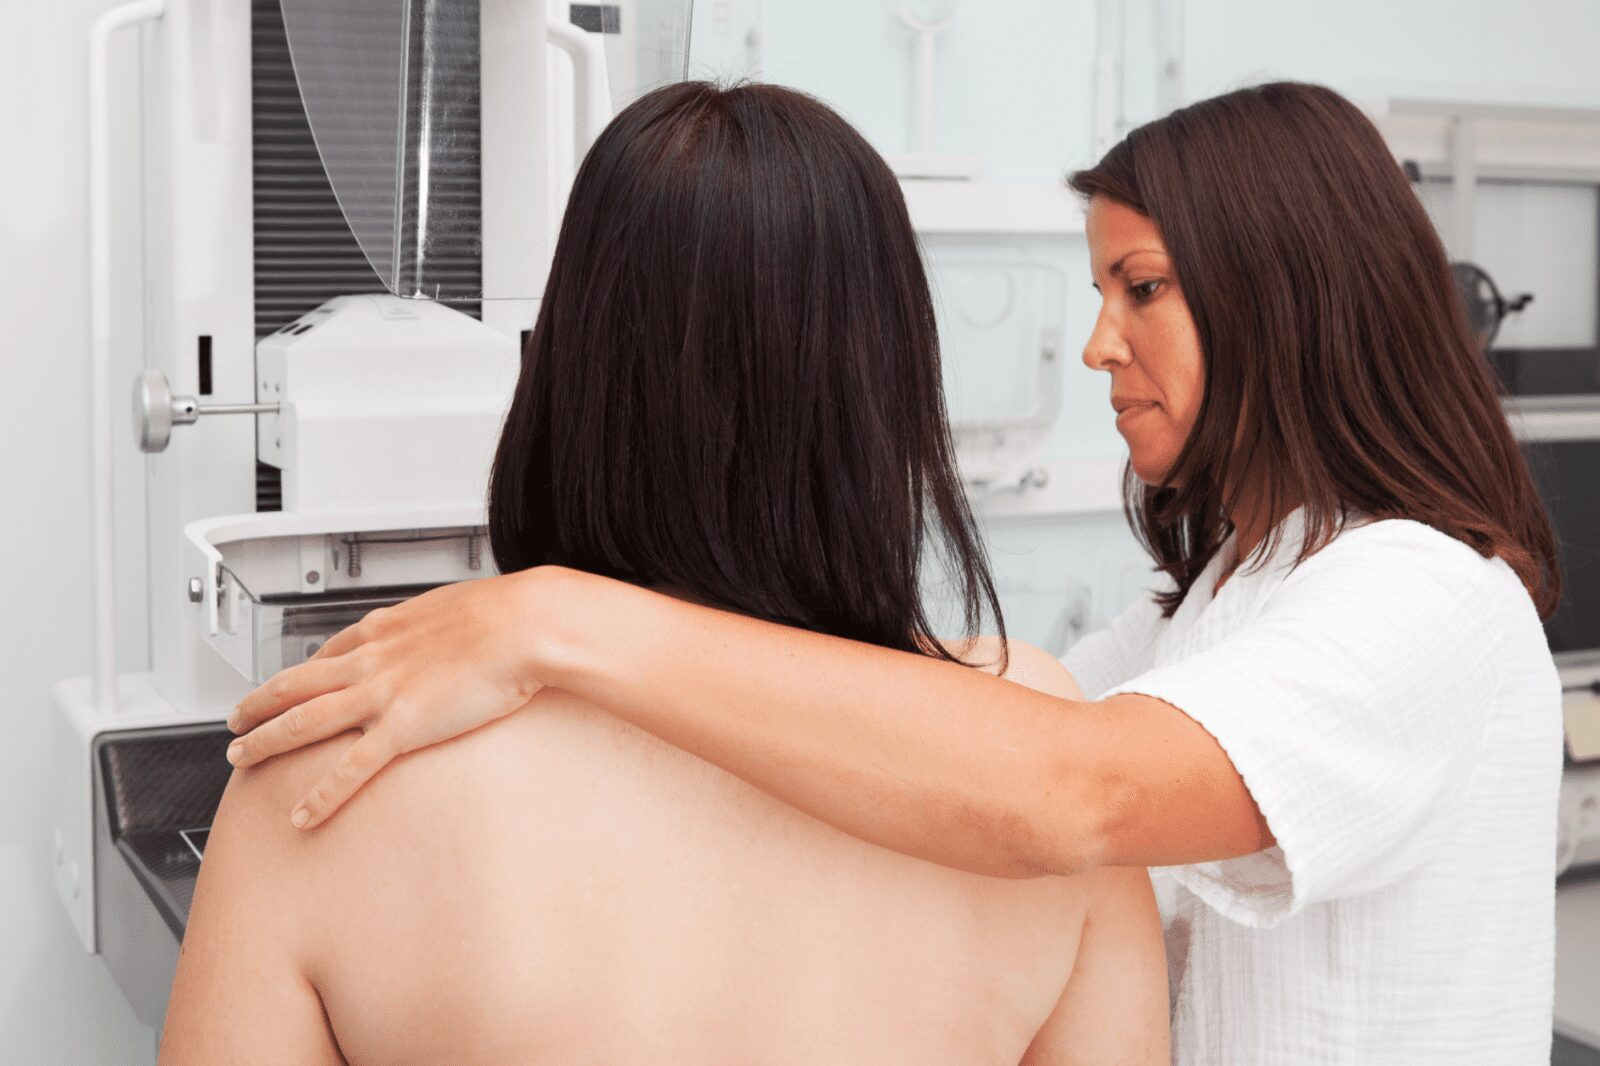 nurse with her arm around a patient getting ready for mammogram